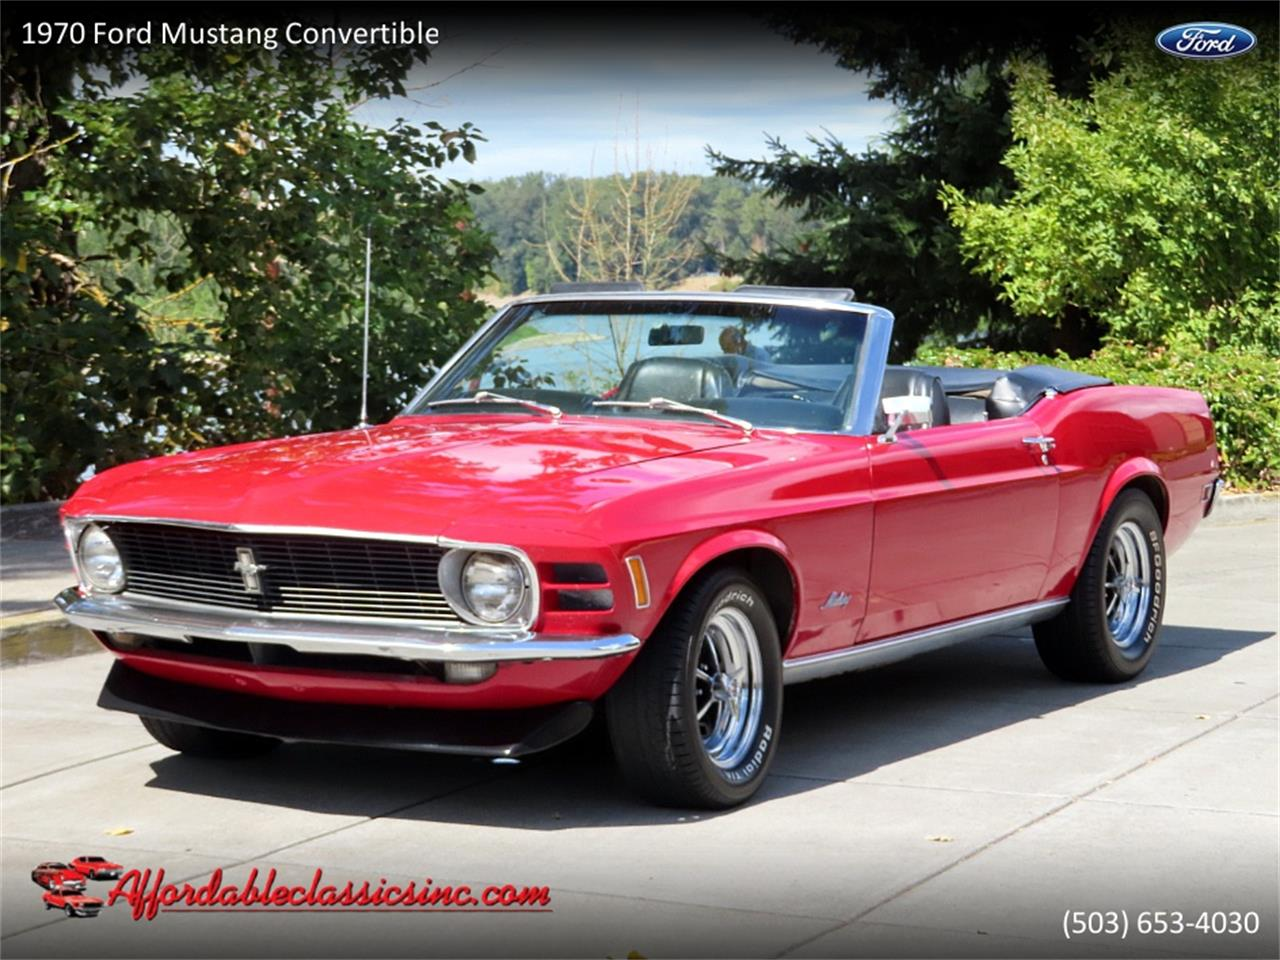 Ford Mustang 302 v8 1970 prix tout compris 1970